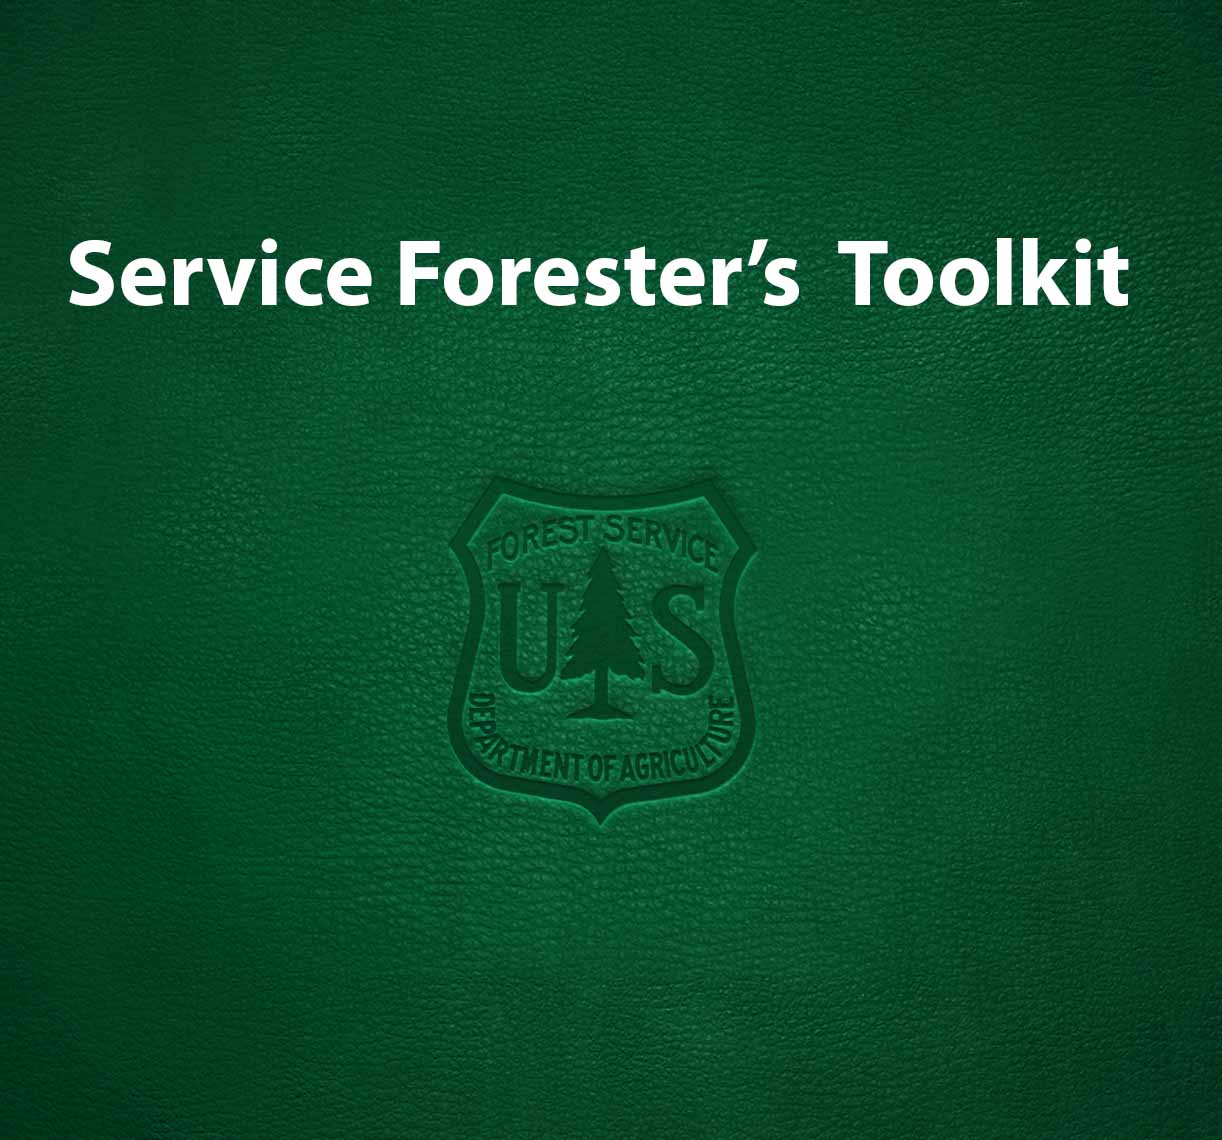 Professional foresters have long relied on the 135-page Service Forester's Handbook for on-the-go access to the formulas, facts and figures they need. The pocket-sized weather-resistant field-guide helps foresters convert figures, calculate volumes and dozens of other key calculations.   This spring UGA Extension and Southern Regional Forestry Extension have released the first electronic and interactive version of the field guide.